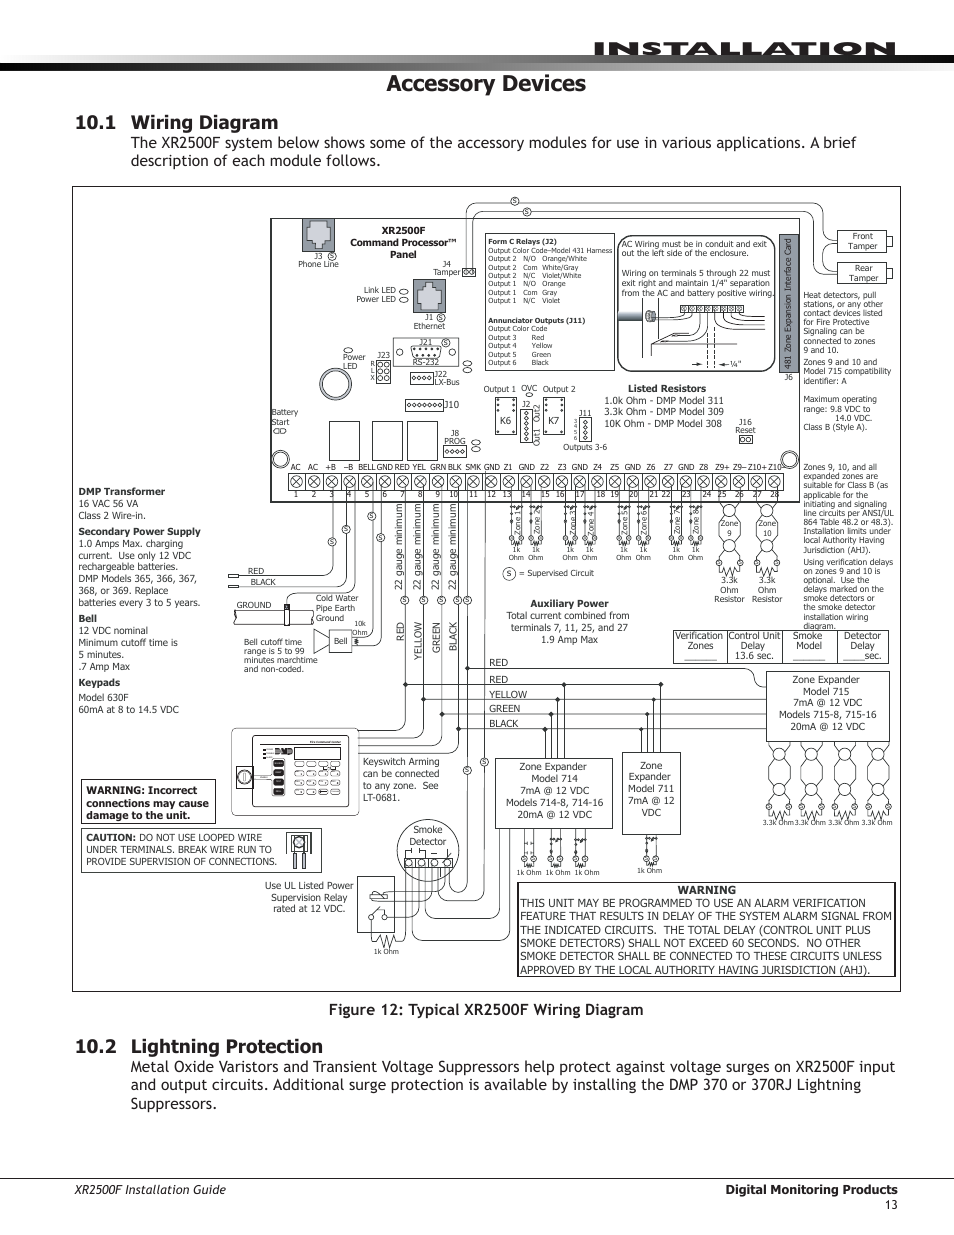 Accessory Devices 1 Wiring Diagram 2 Lightning Protection Dmp Detector Circuit Electronics Xr2500f User Manual Page 21 60